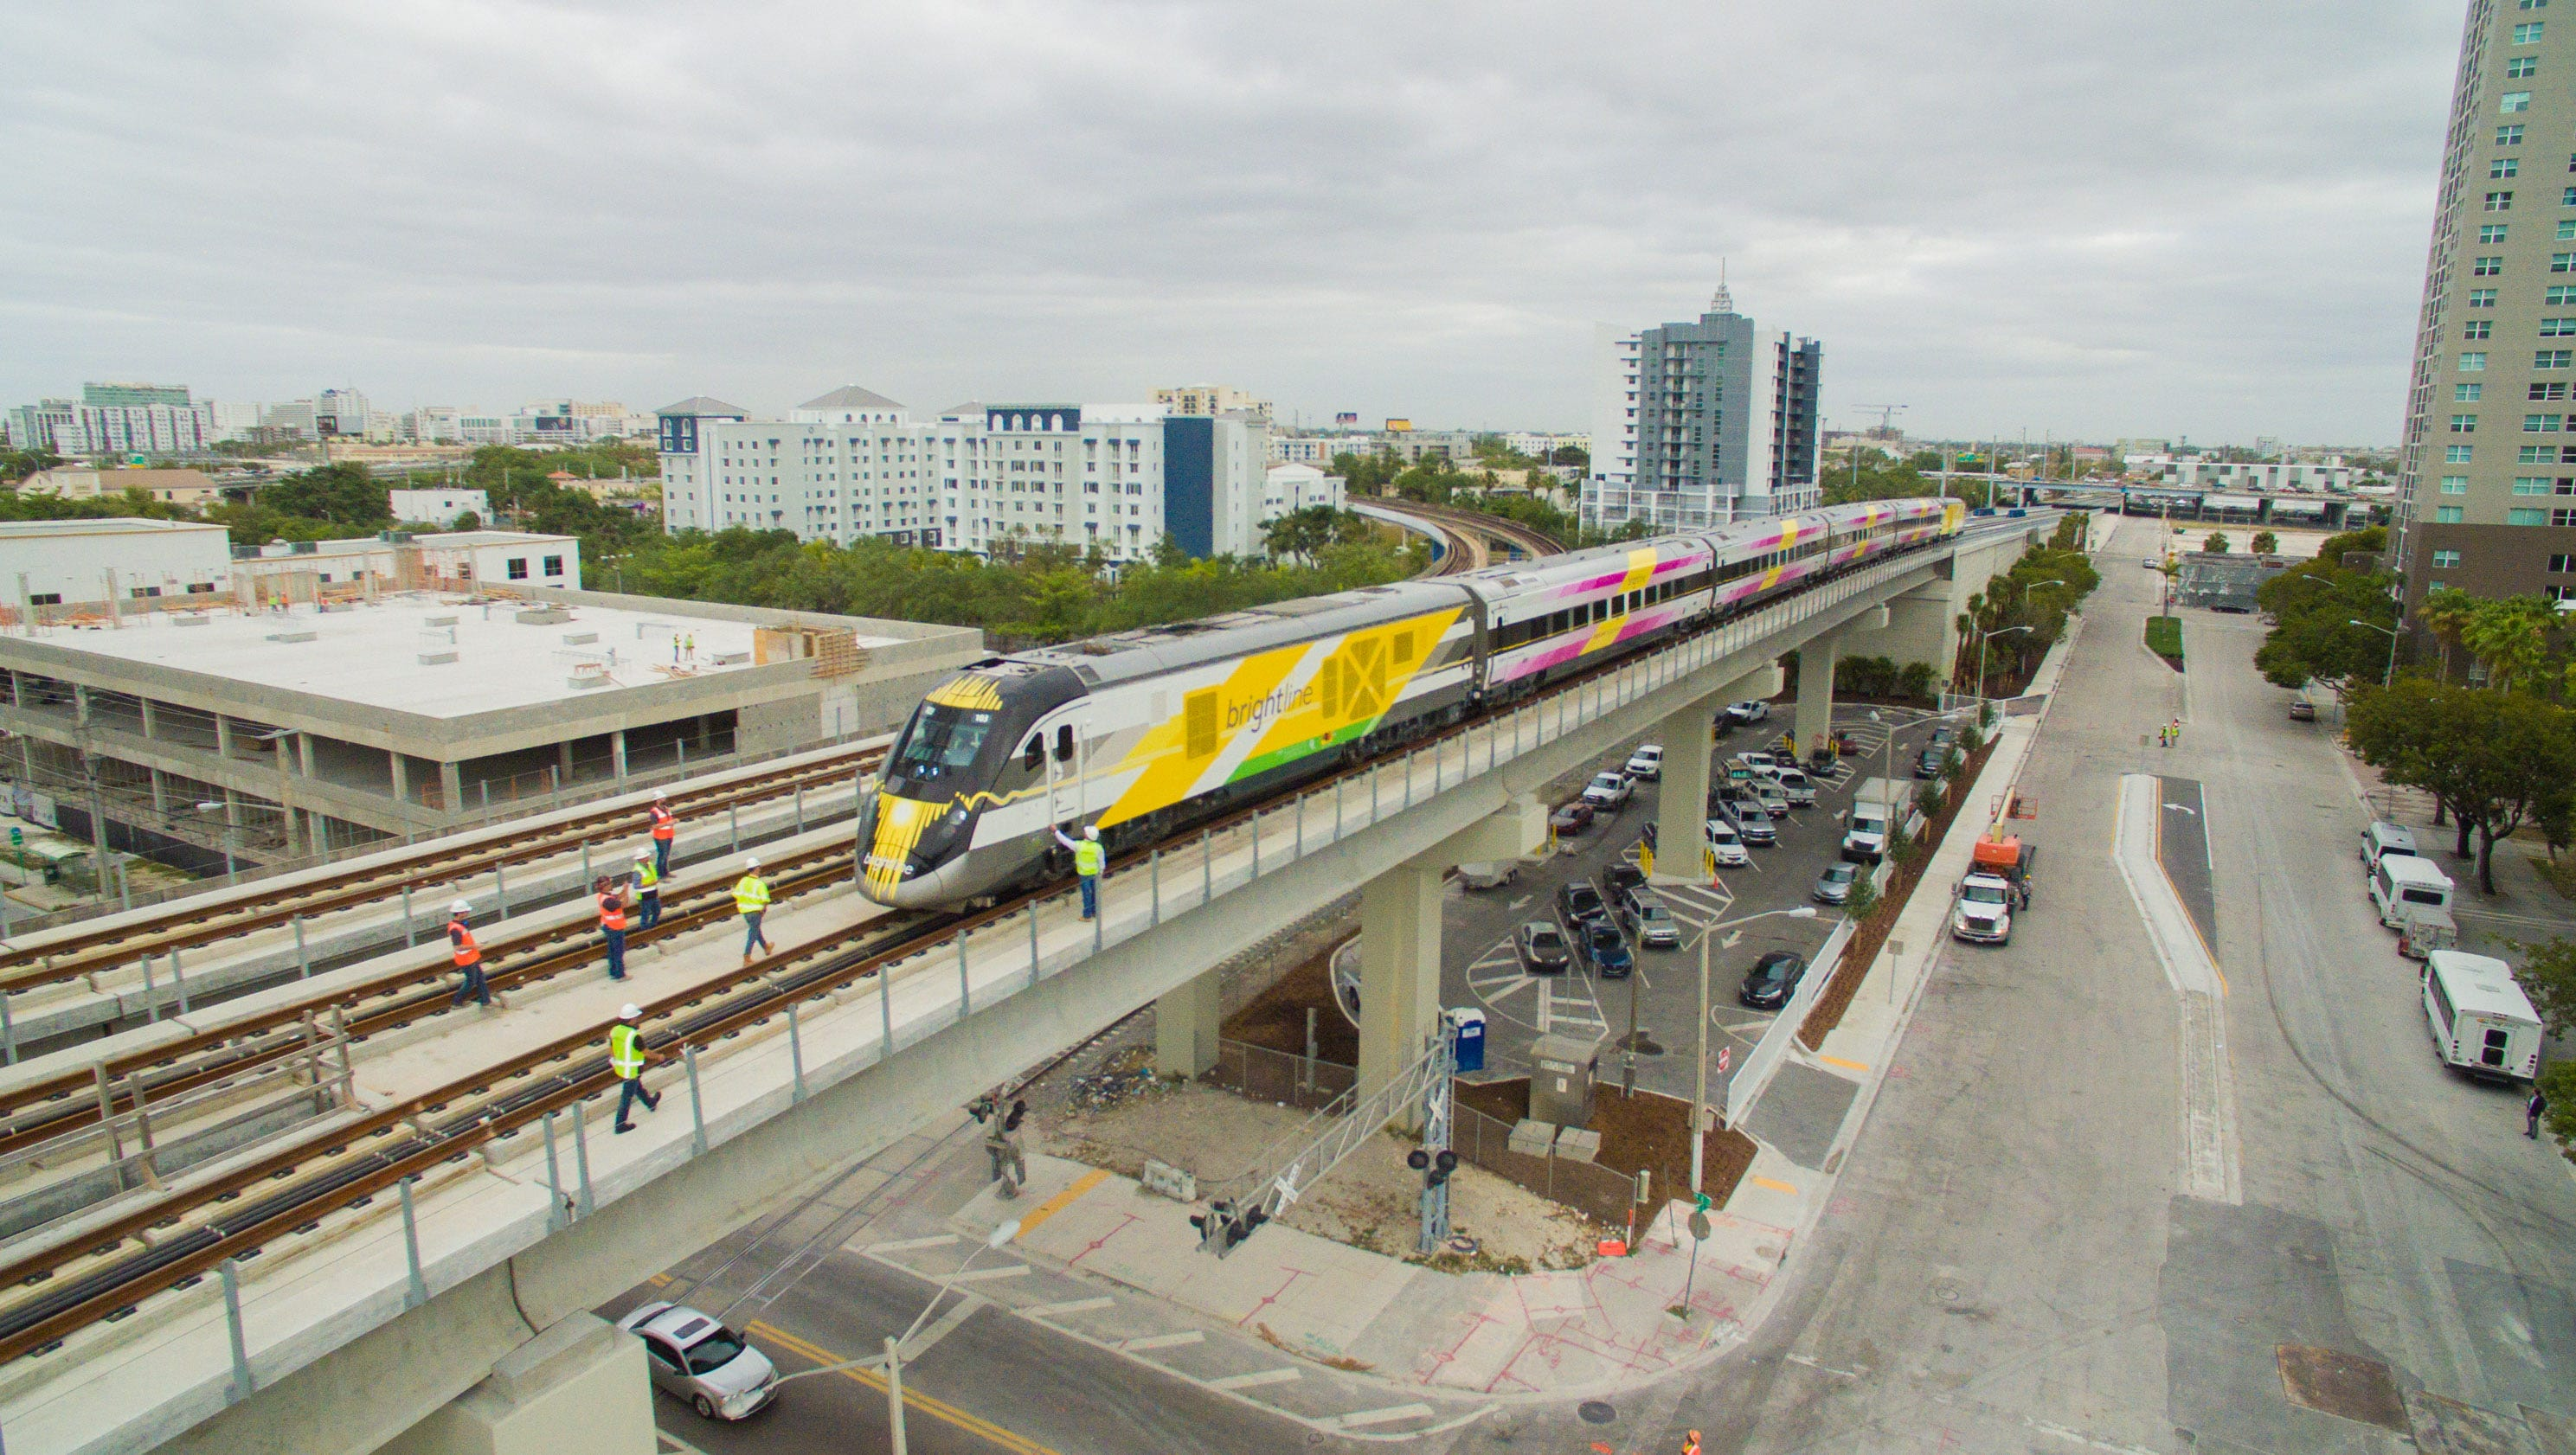 brightline trains to connect miami with west palm beach may 19